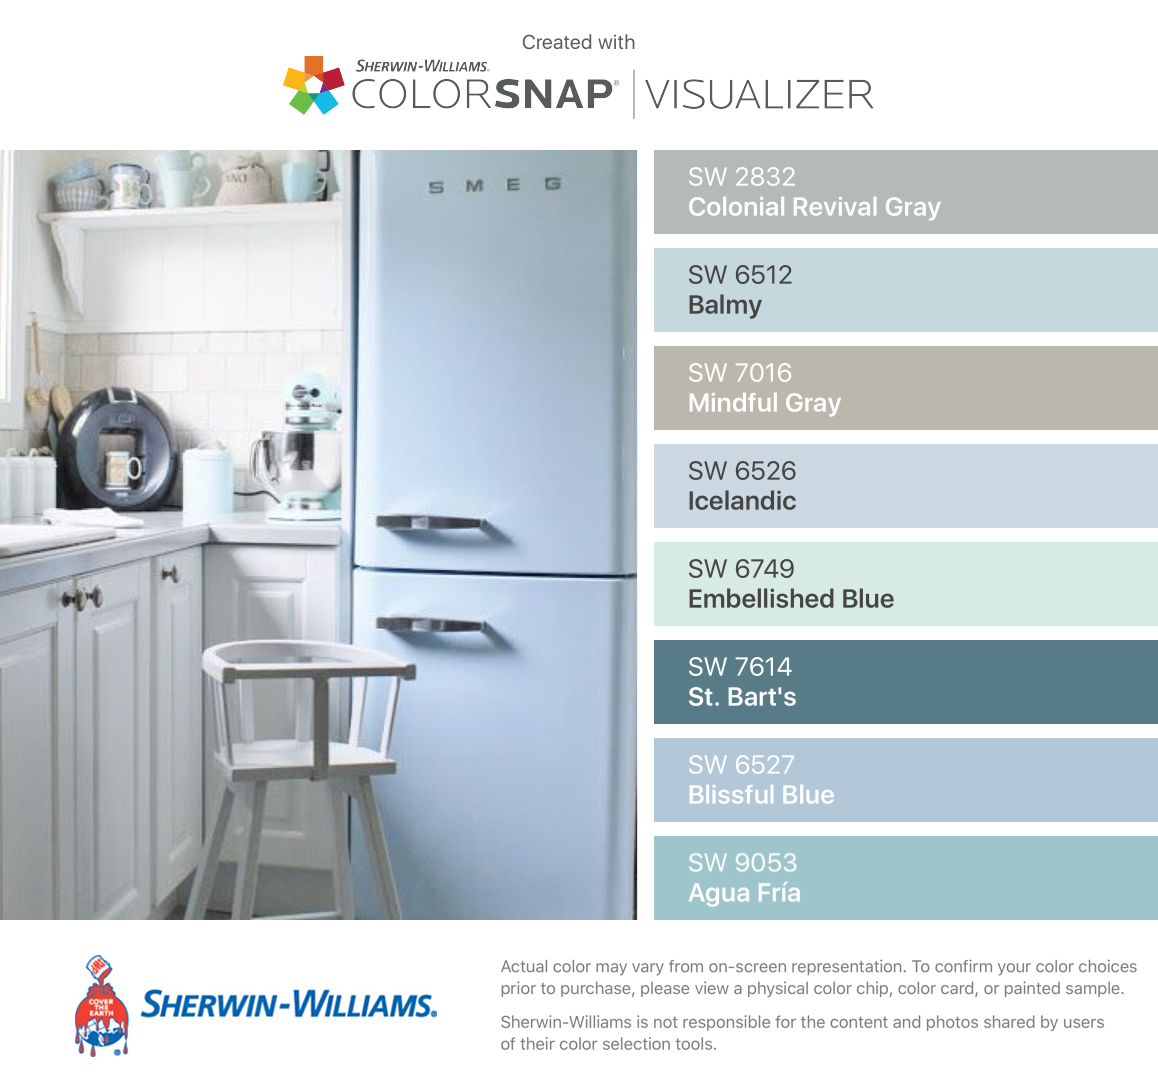 I Found These Colors With Colorsnap Visualizer For Iphone By Sherwin Williams Colonial Revival Gray Sw Blue Accent Walls Mindful Gray Sherwin Williams Blue